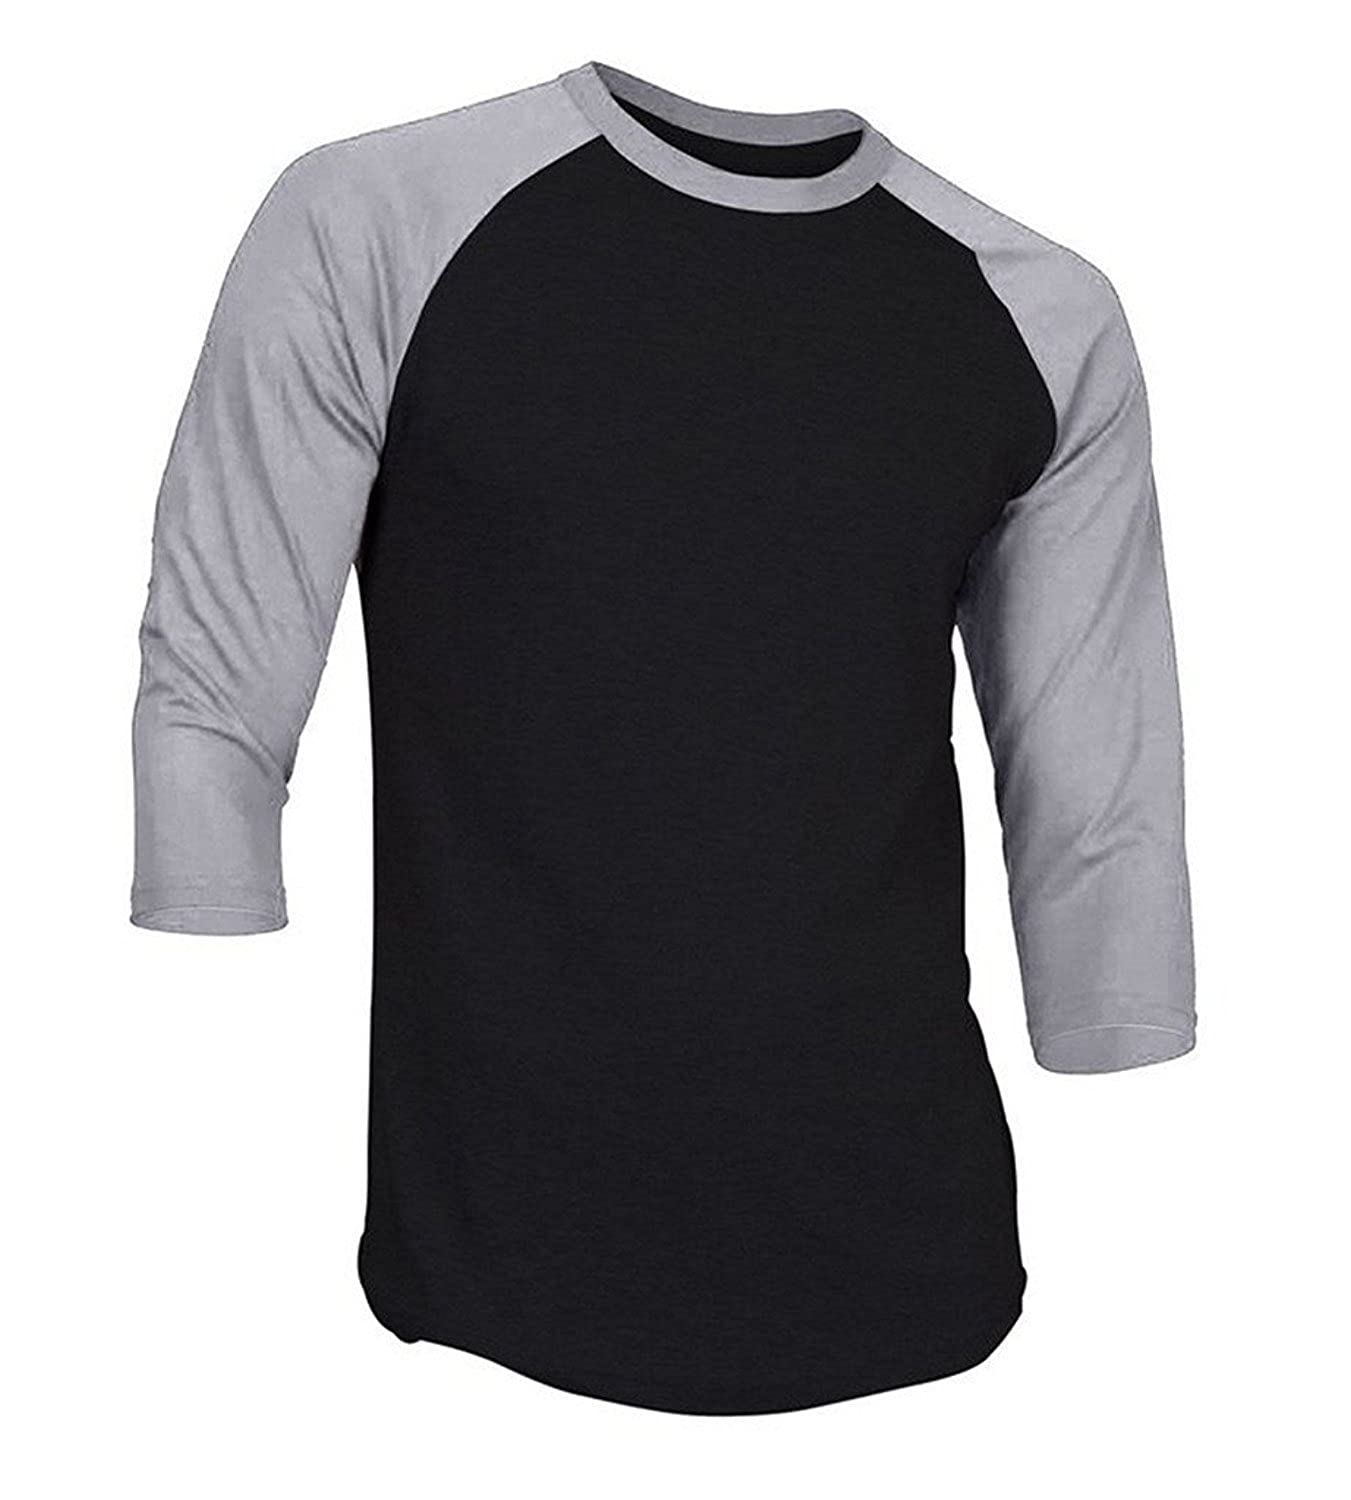 4c587a01 Hat and Beyond Mens 3/4 Sleeve Baseball T Shirt Soft Slim Fit Plain Jersey  | Amazon.com